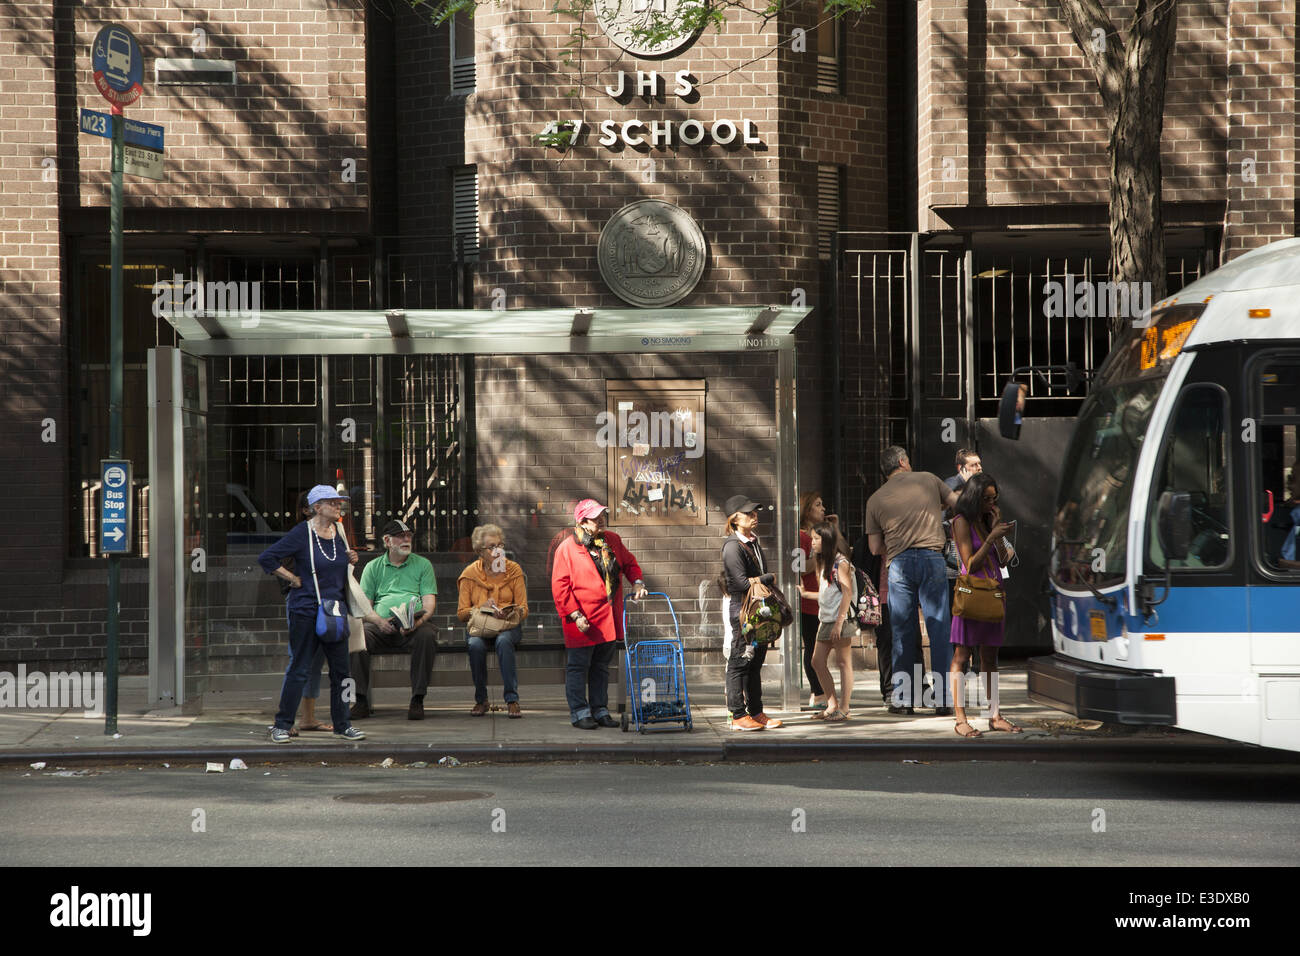 People wait for the crosstown bus along 14th St. in Manhattan, NYC. - Stock Image